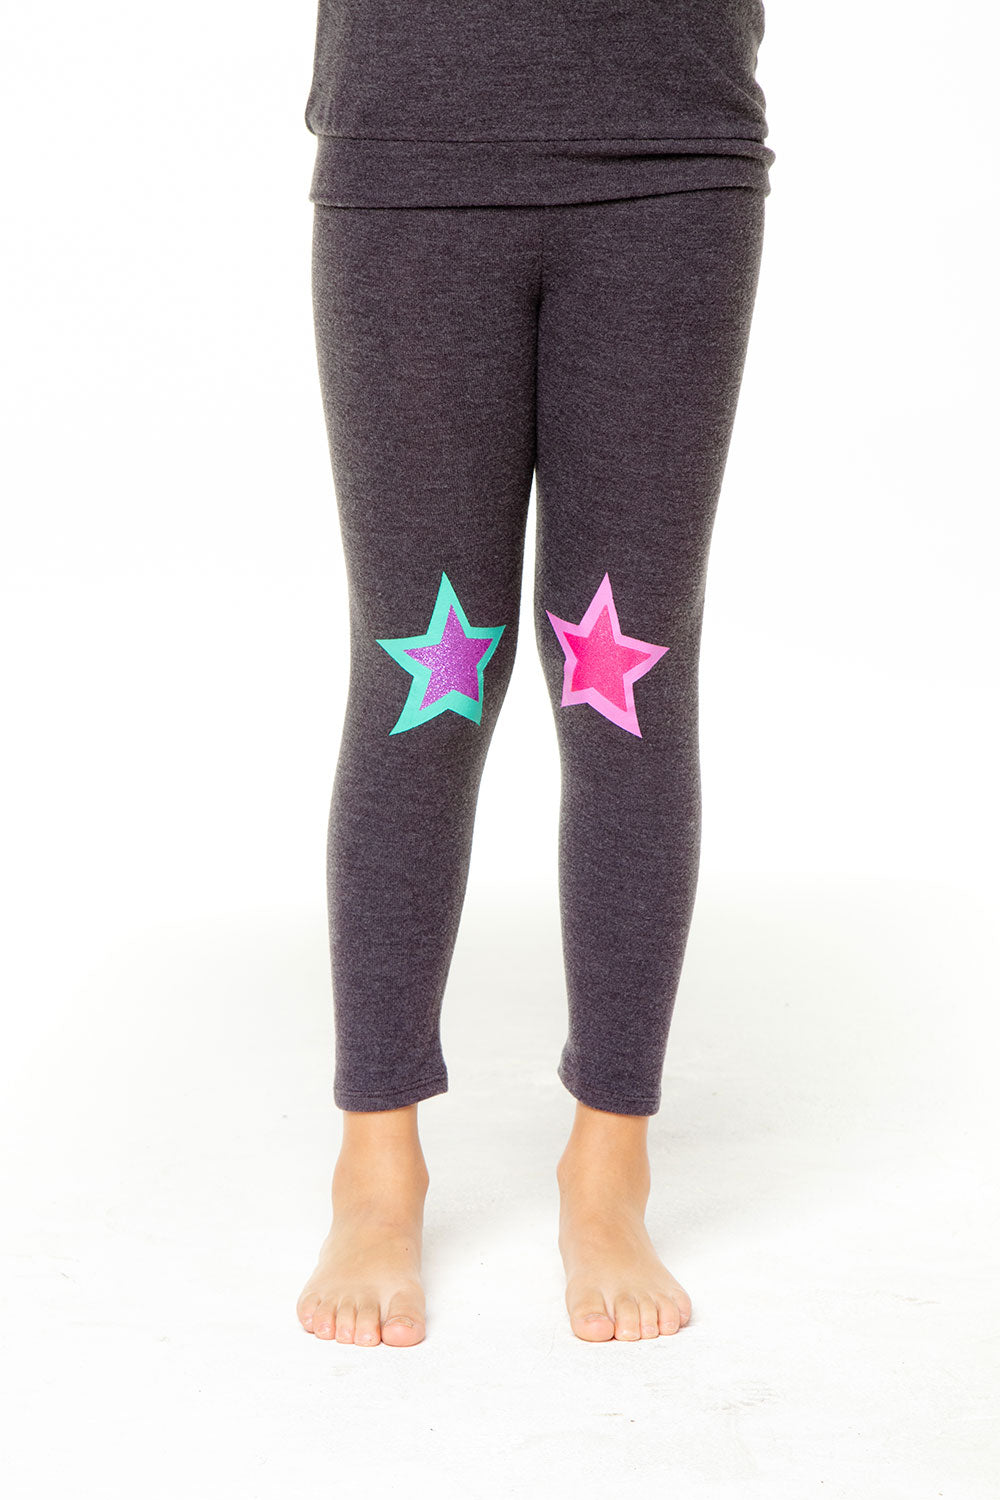 Glitter Star Leggings GIRLS chaserbrand4.myshopify.com